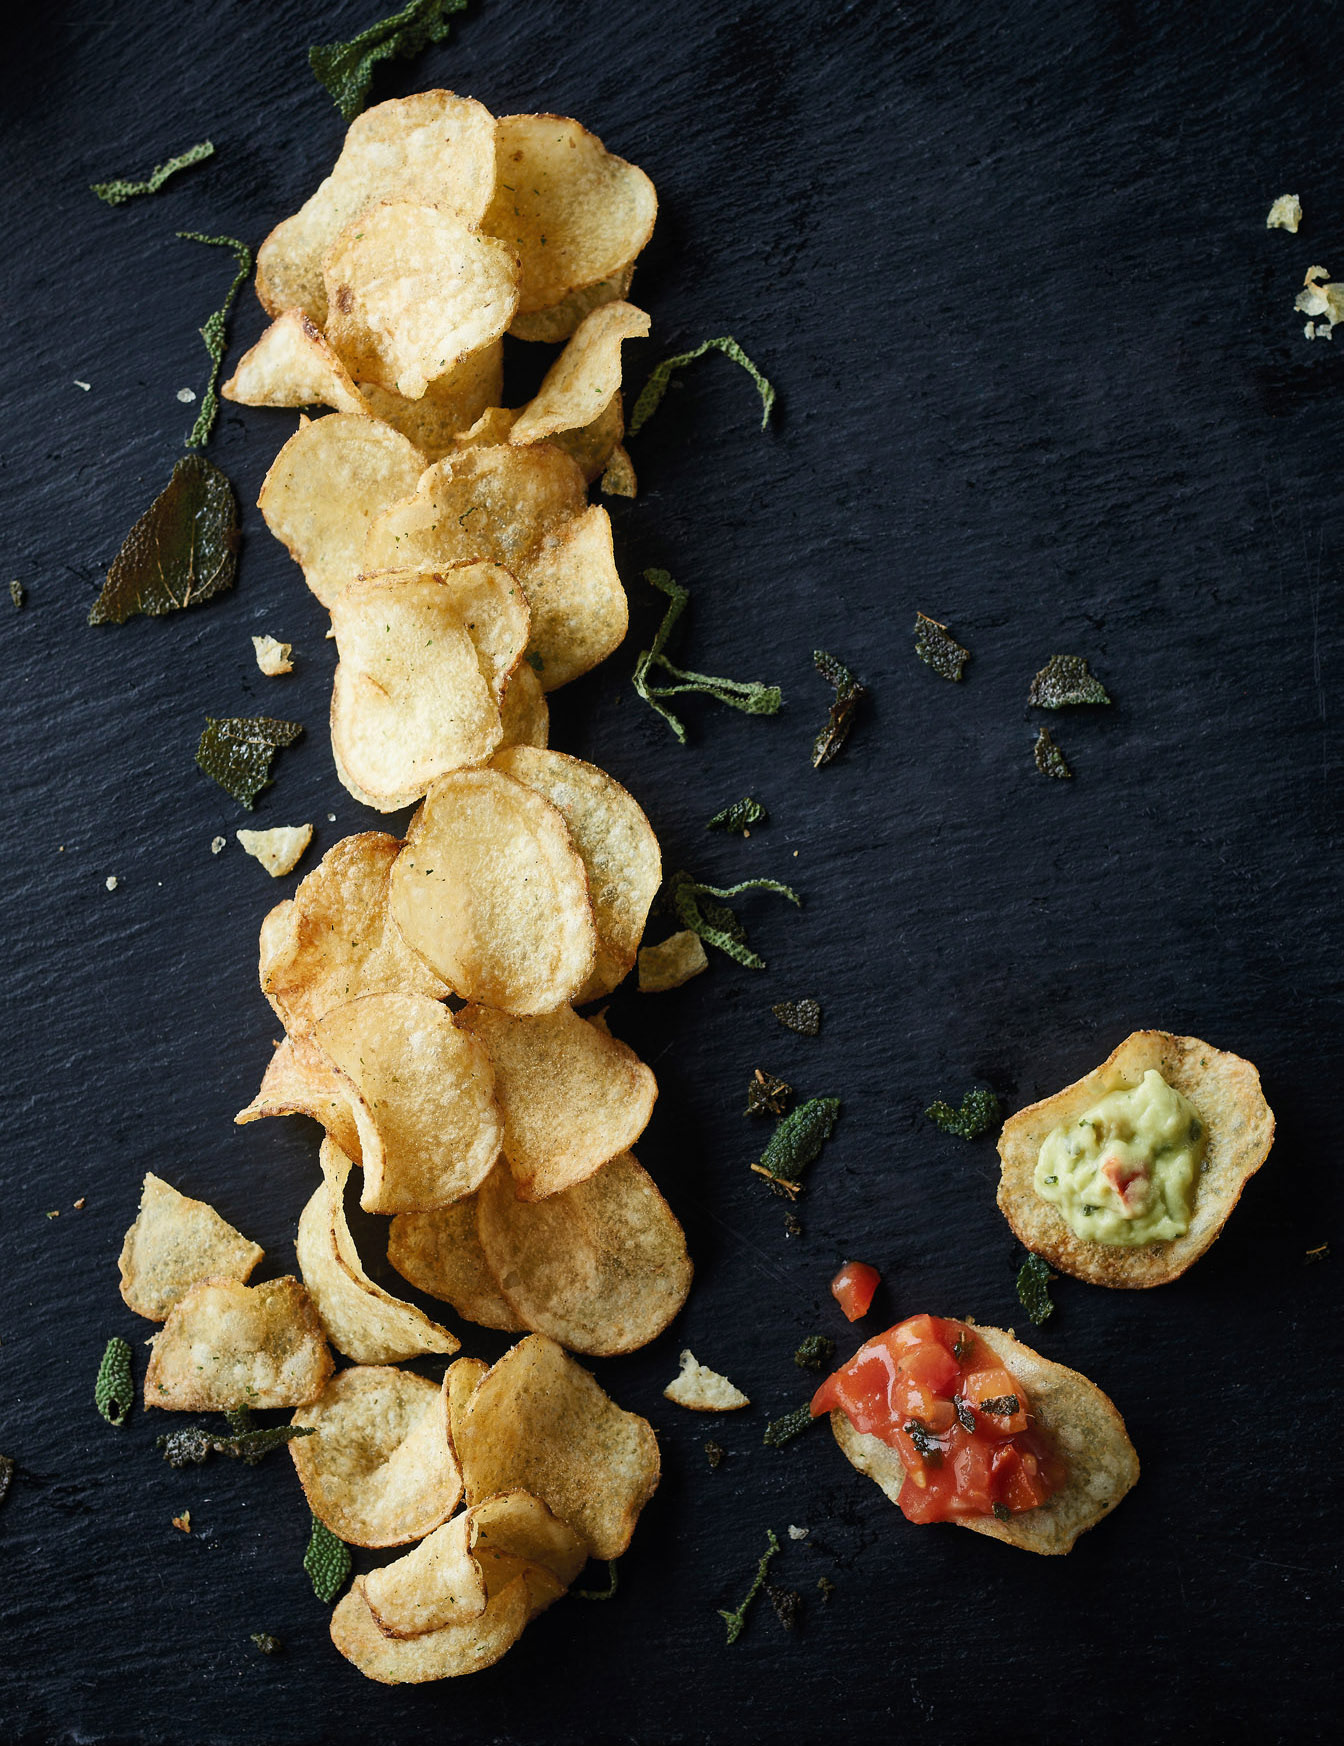 Fairfields crisps on black slate